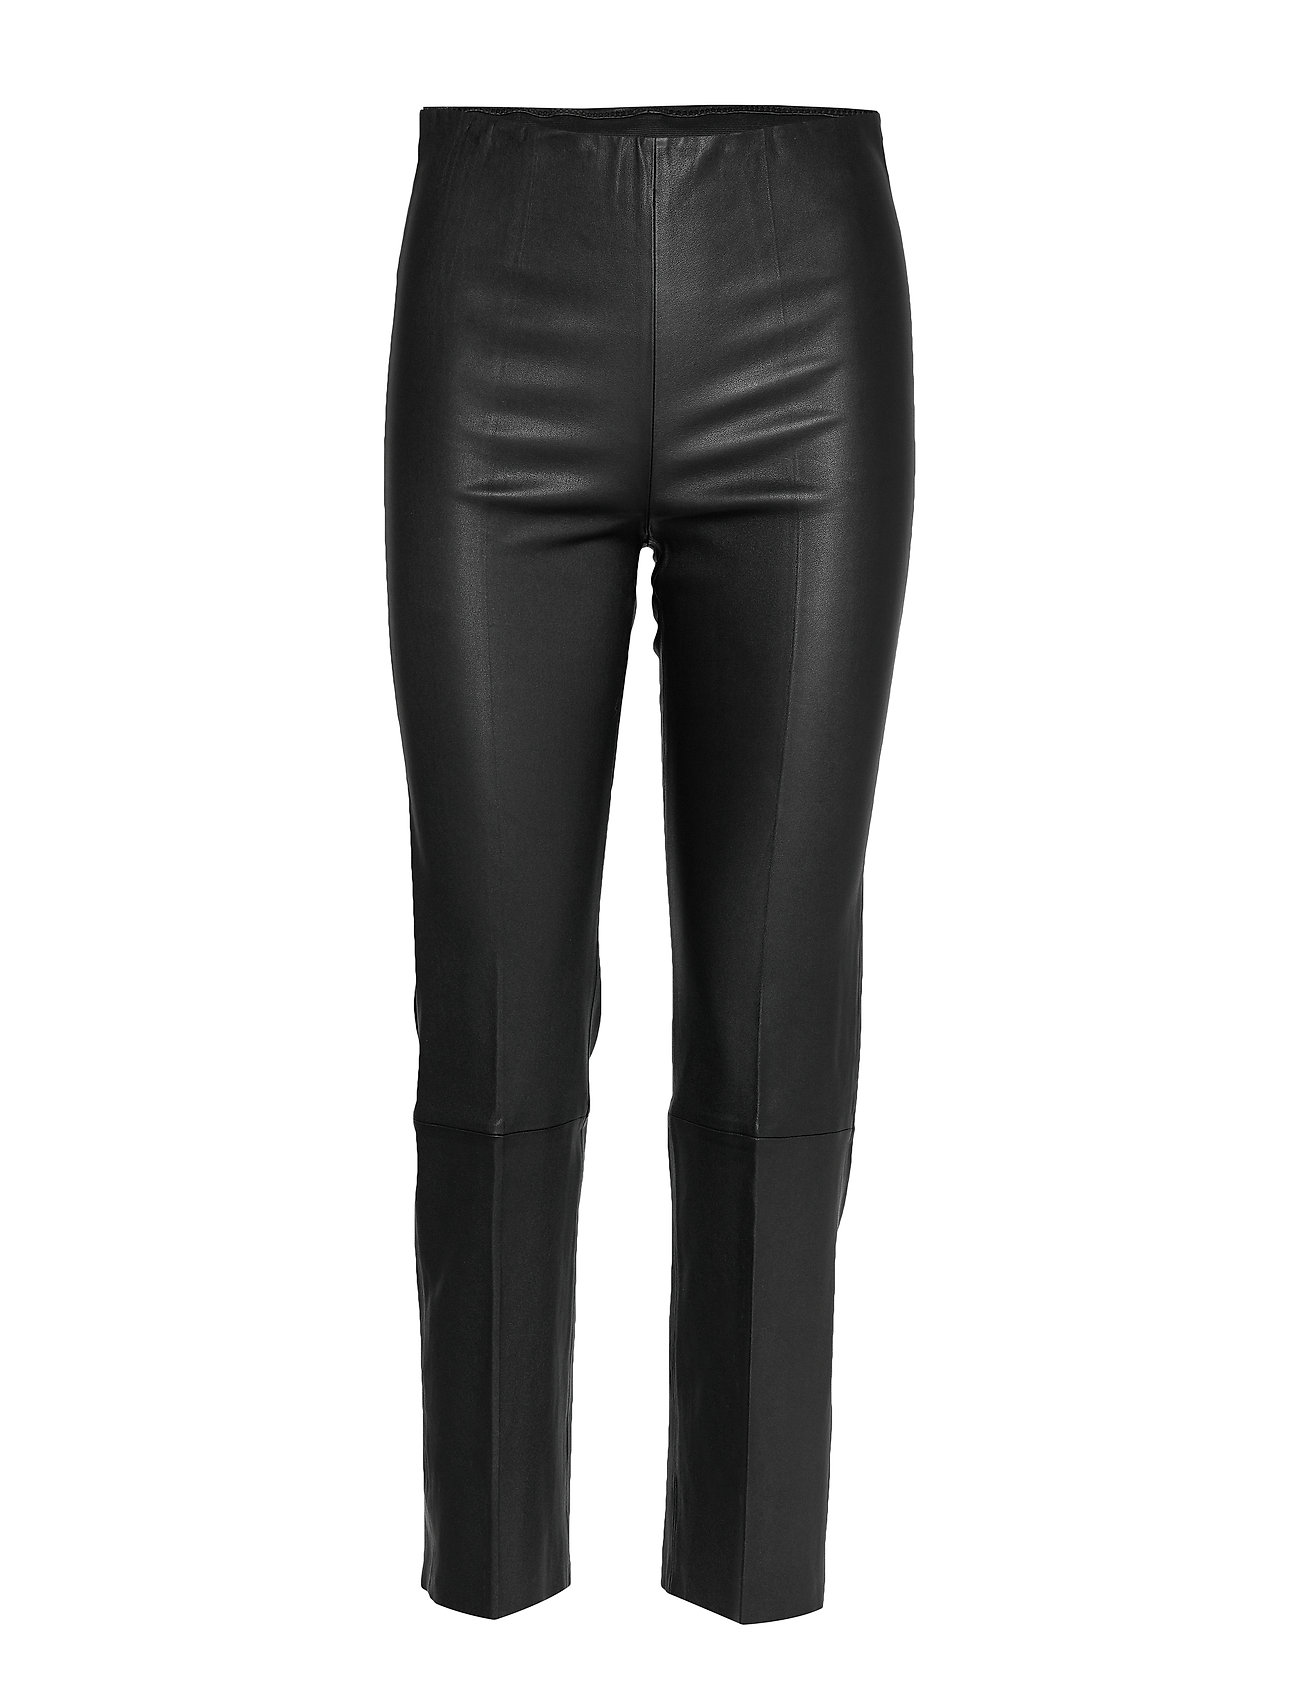 Image of Florentina Leather Leggings/Bukser Sort By Malene Birger (3296720333)